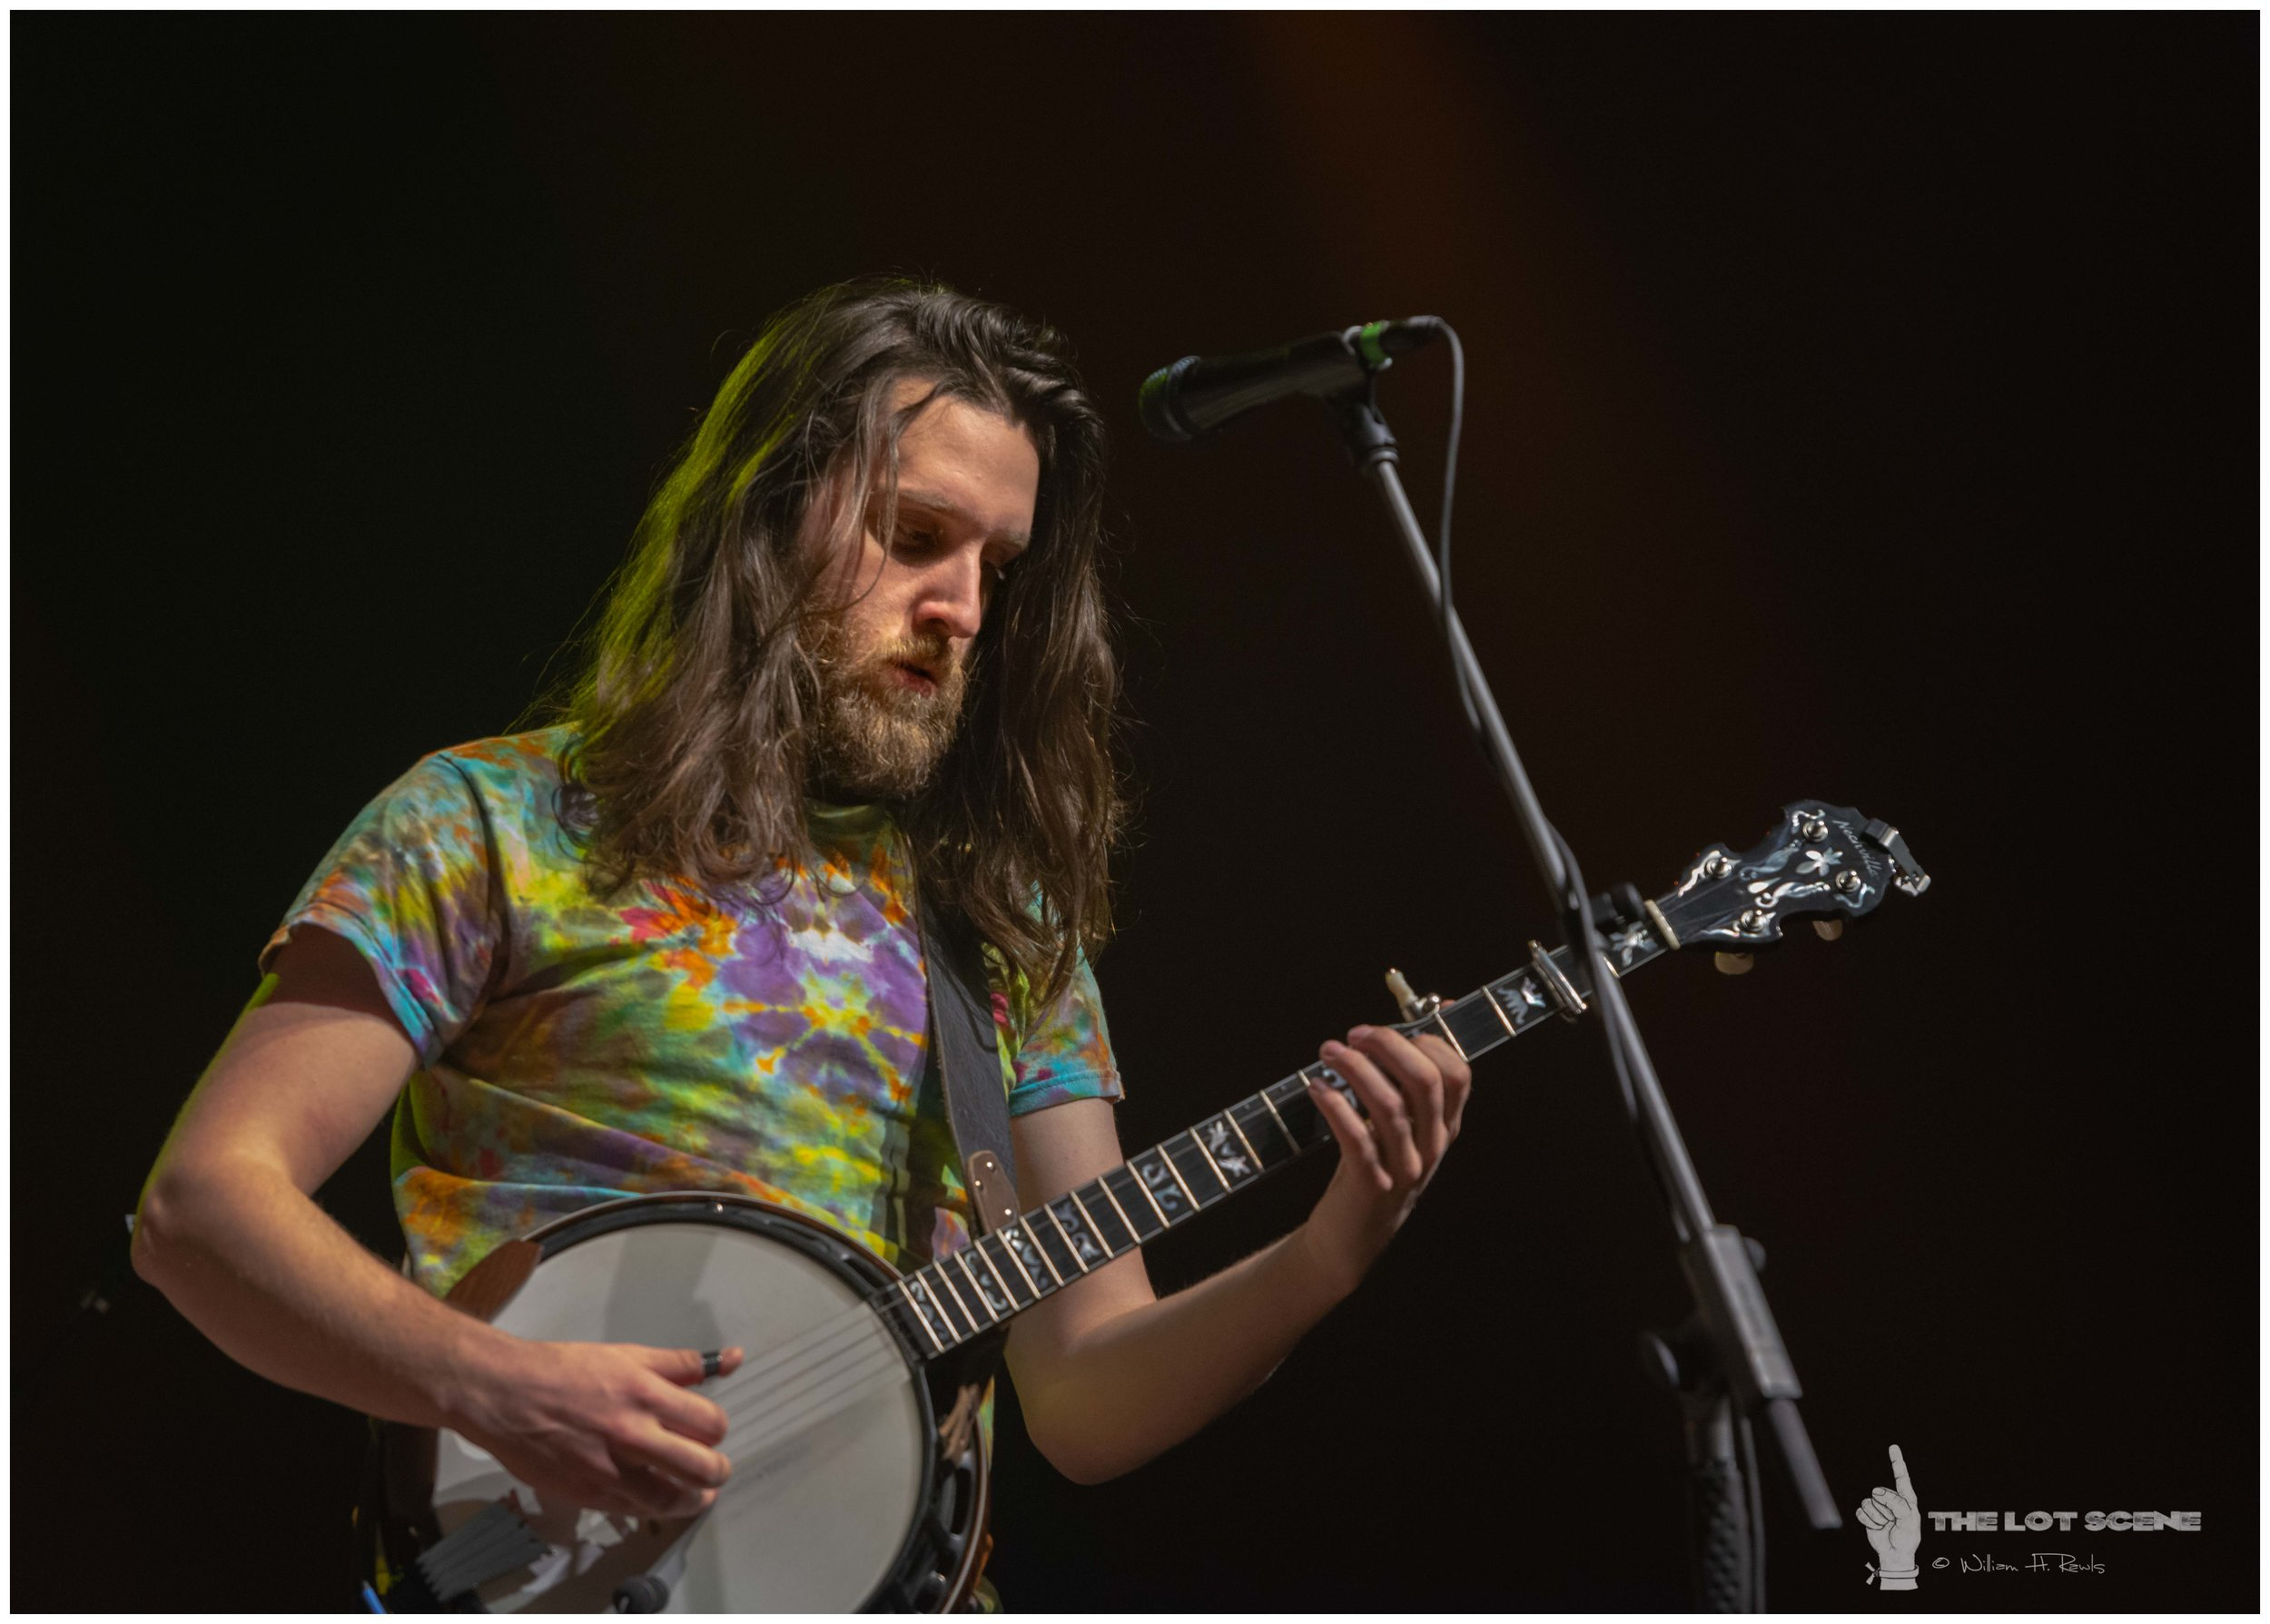 Billy Strings at The Anthem DC - February 2 2019 - 6.jpg